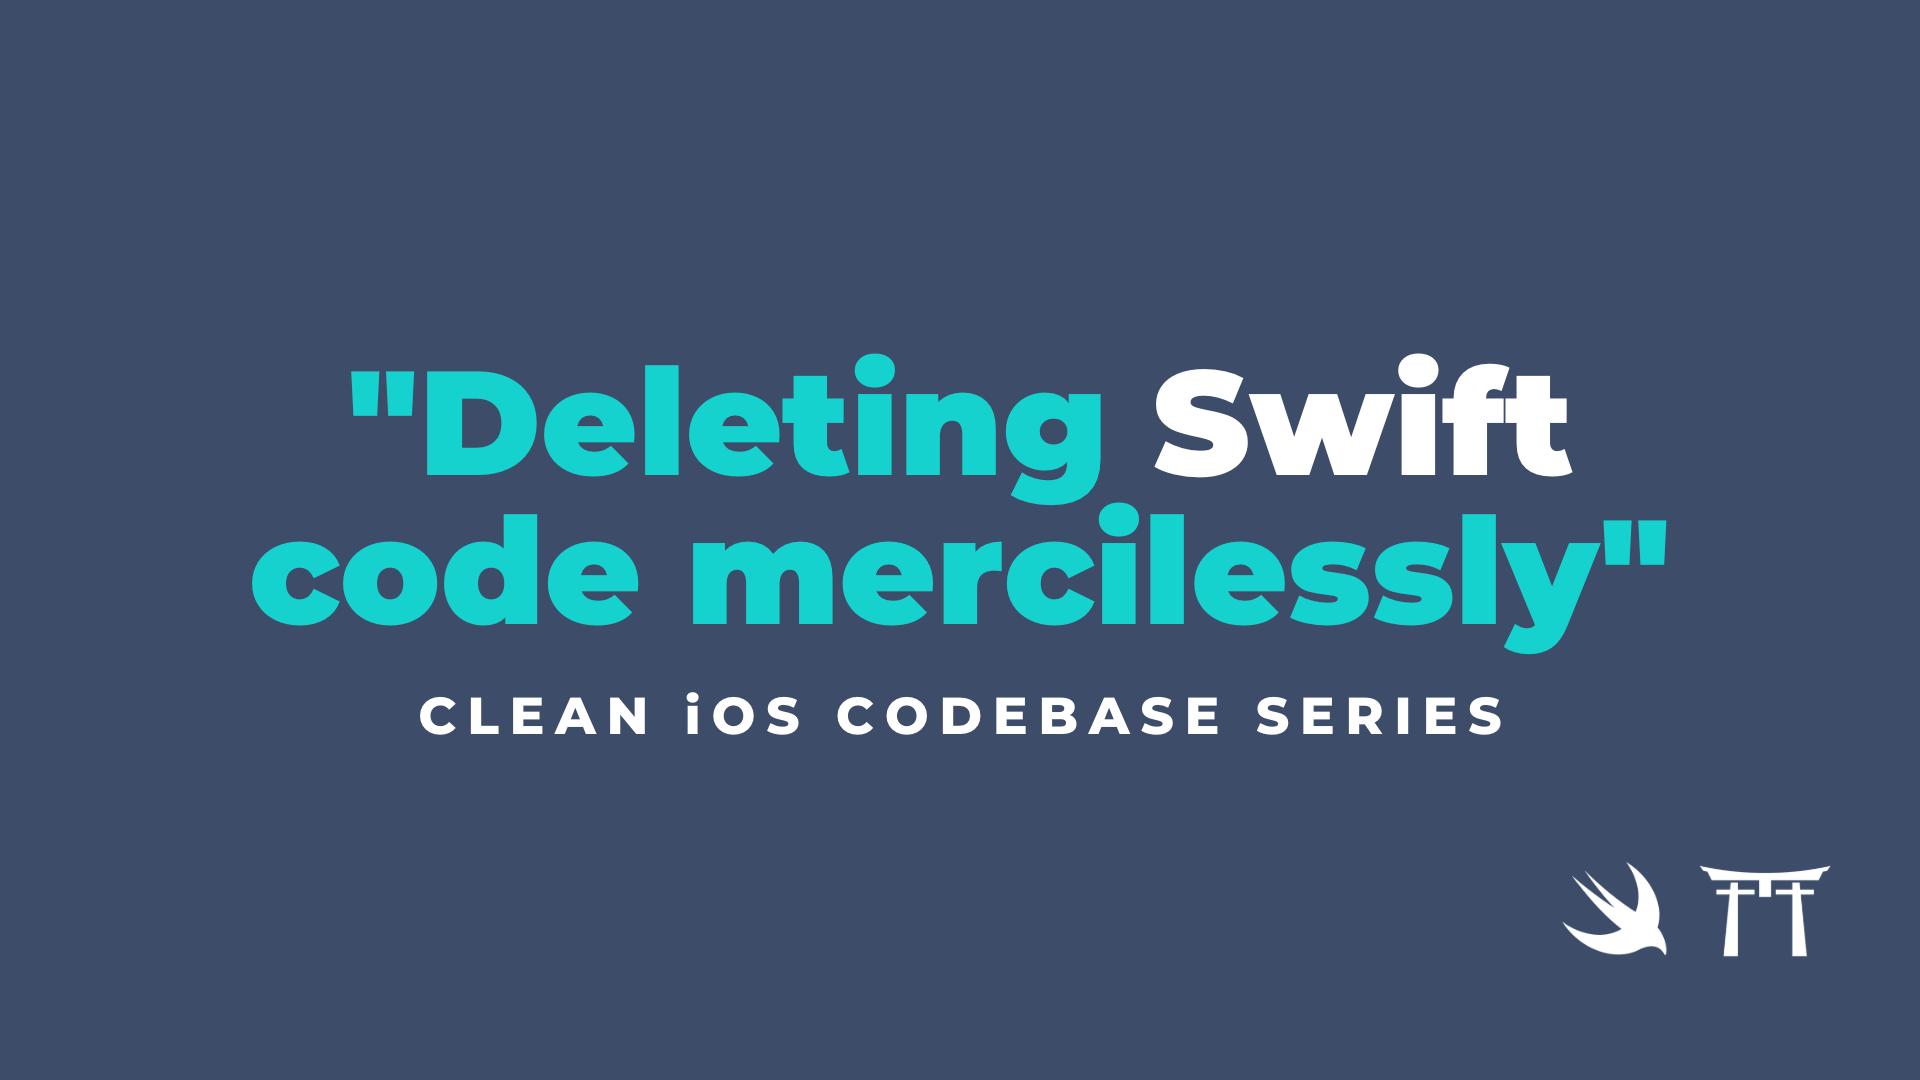 How Deleting Swift Code Can Make You a More Valuable iOS